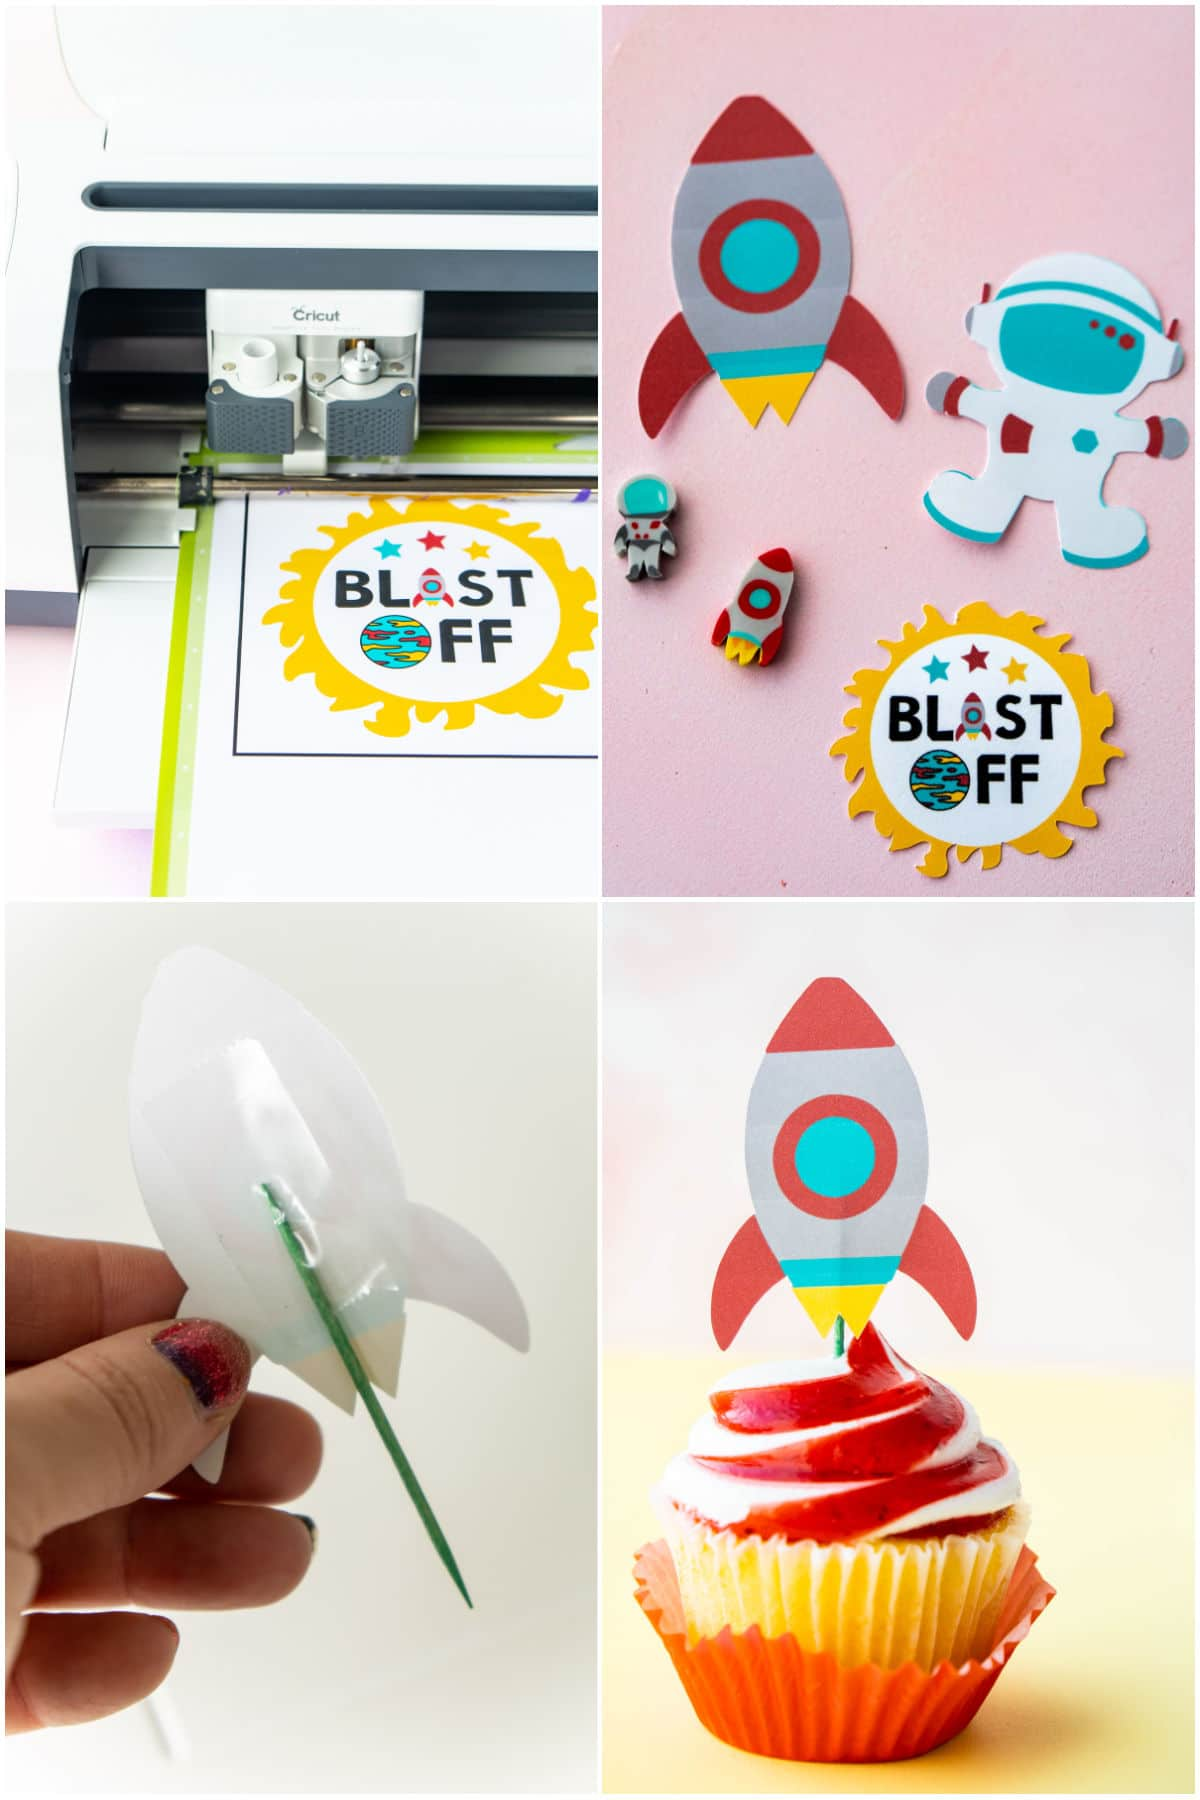 collage of images showing DIY cupcake toppers